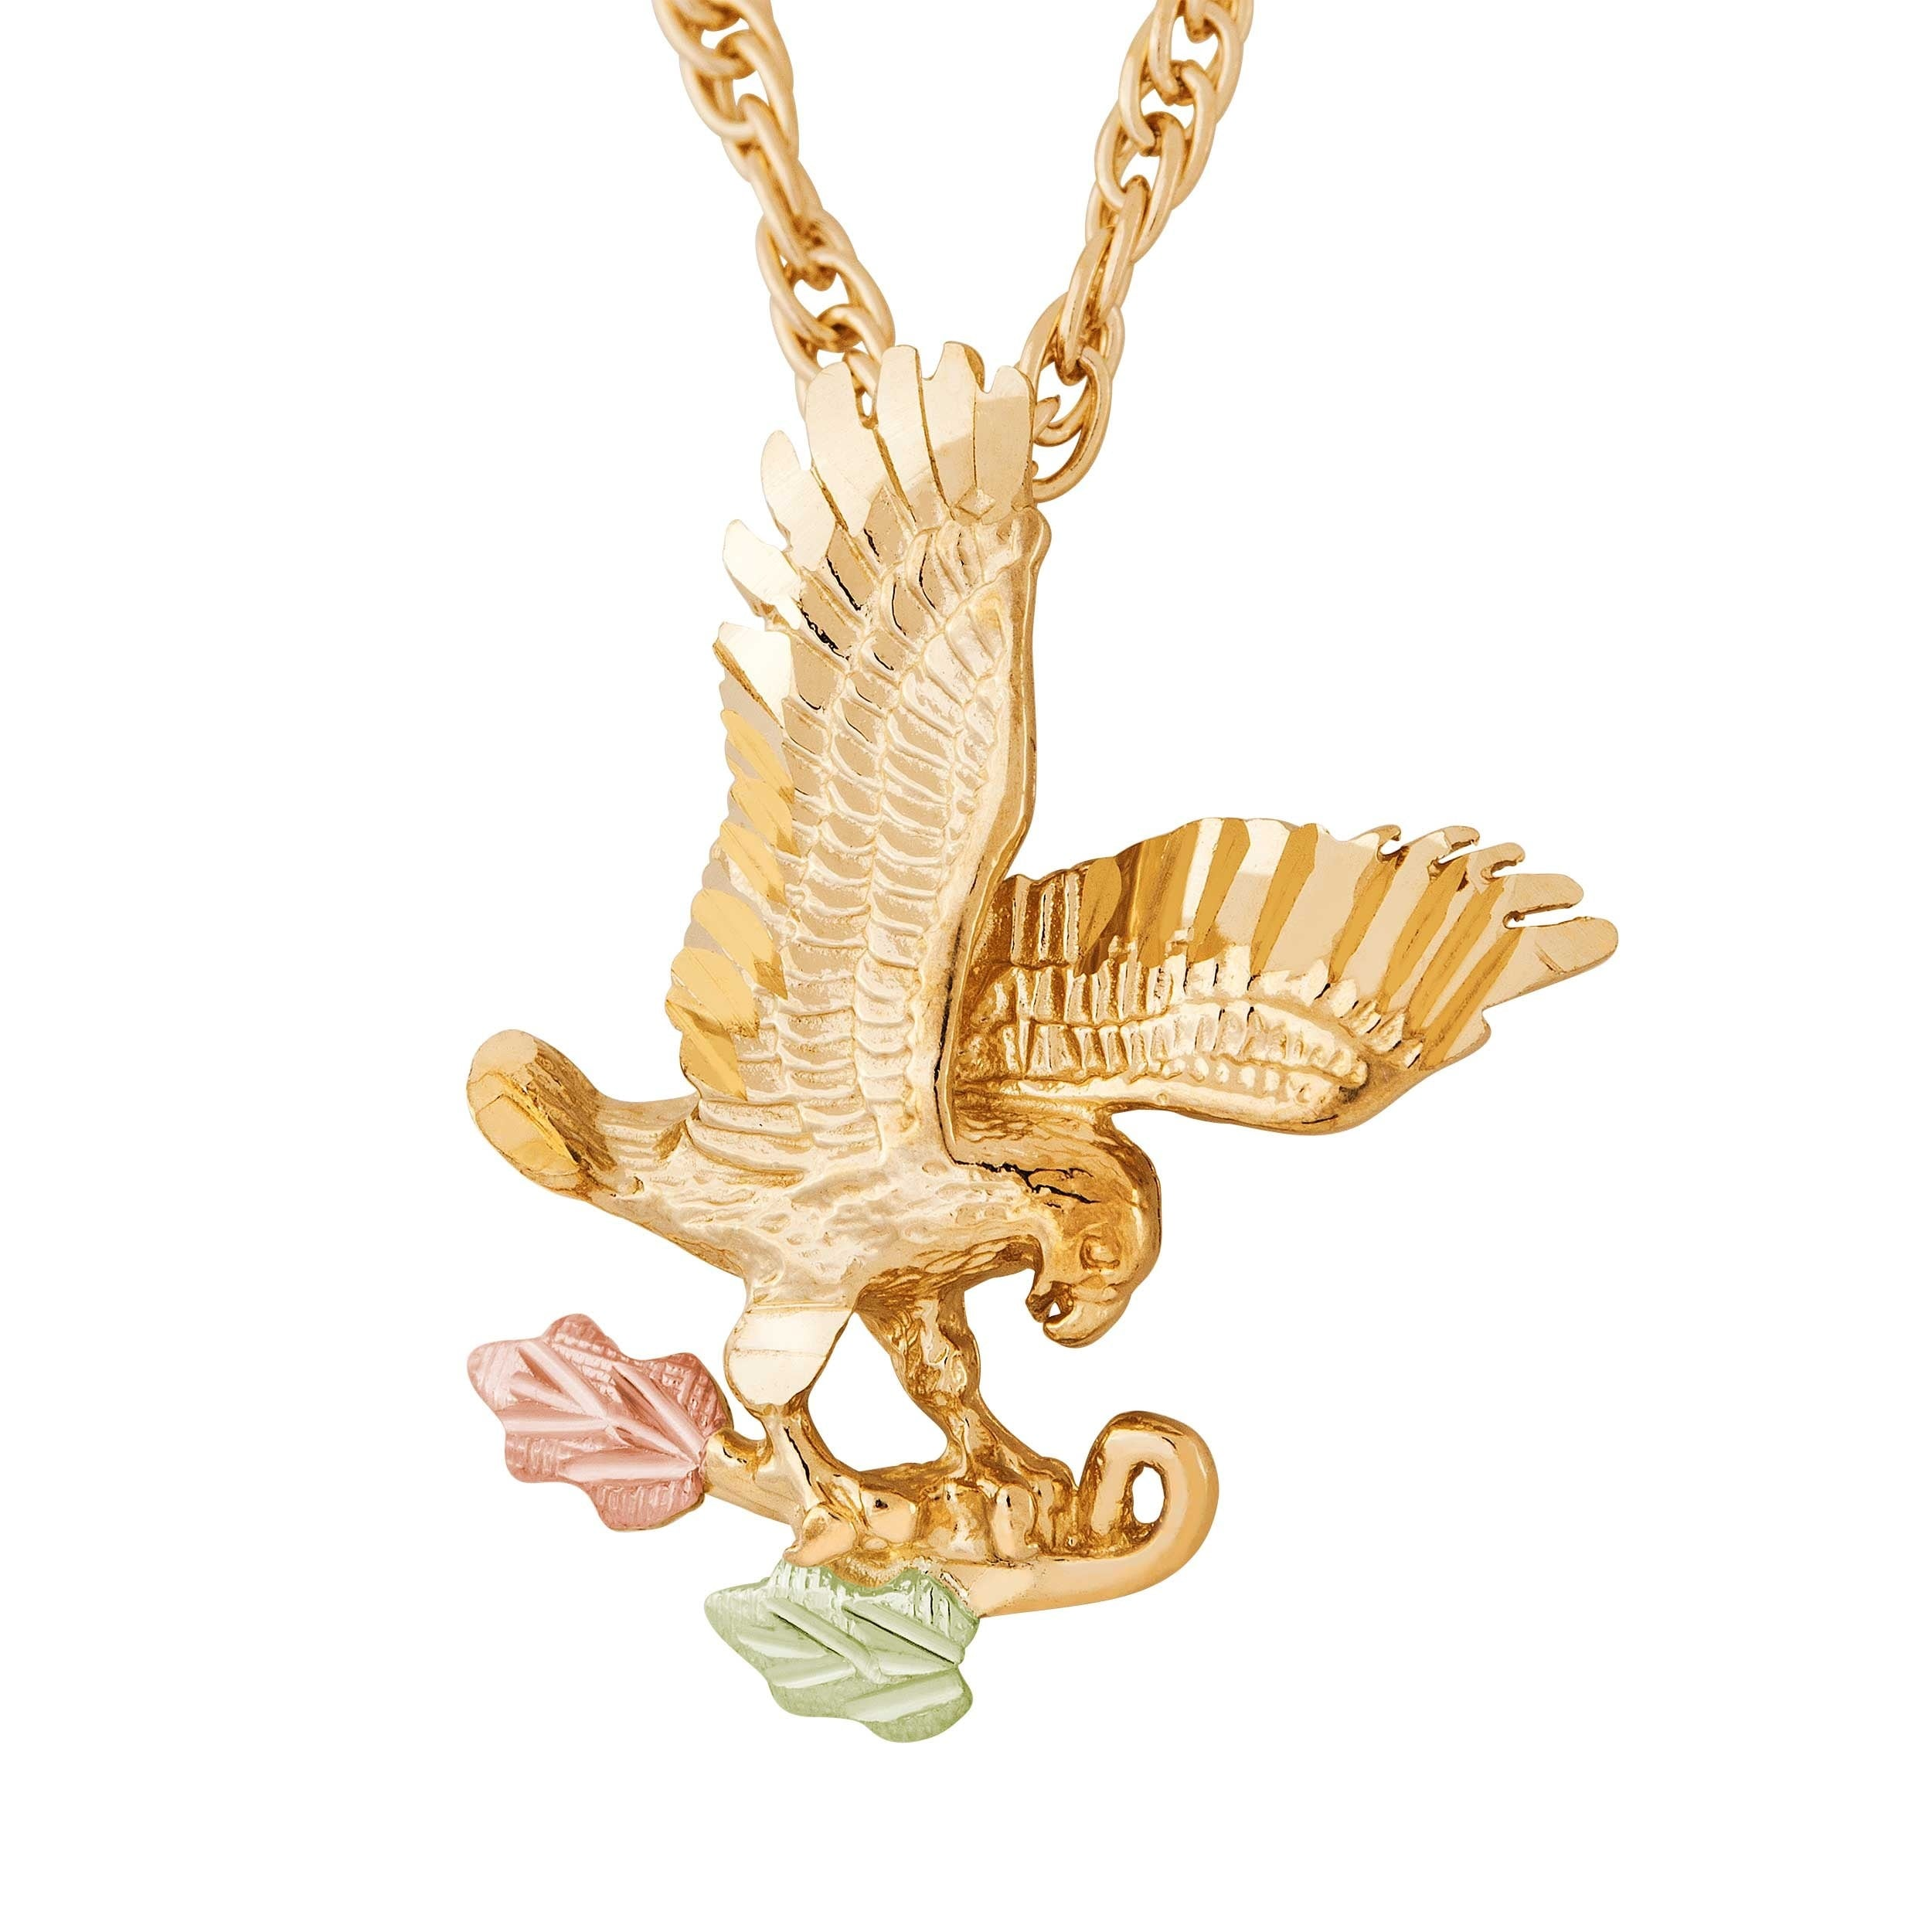 khot la vincent products dsc henson gift shop pendant cha gallery art eagle